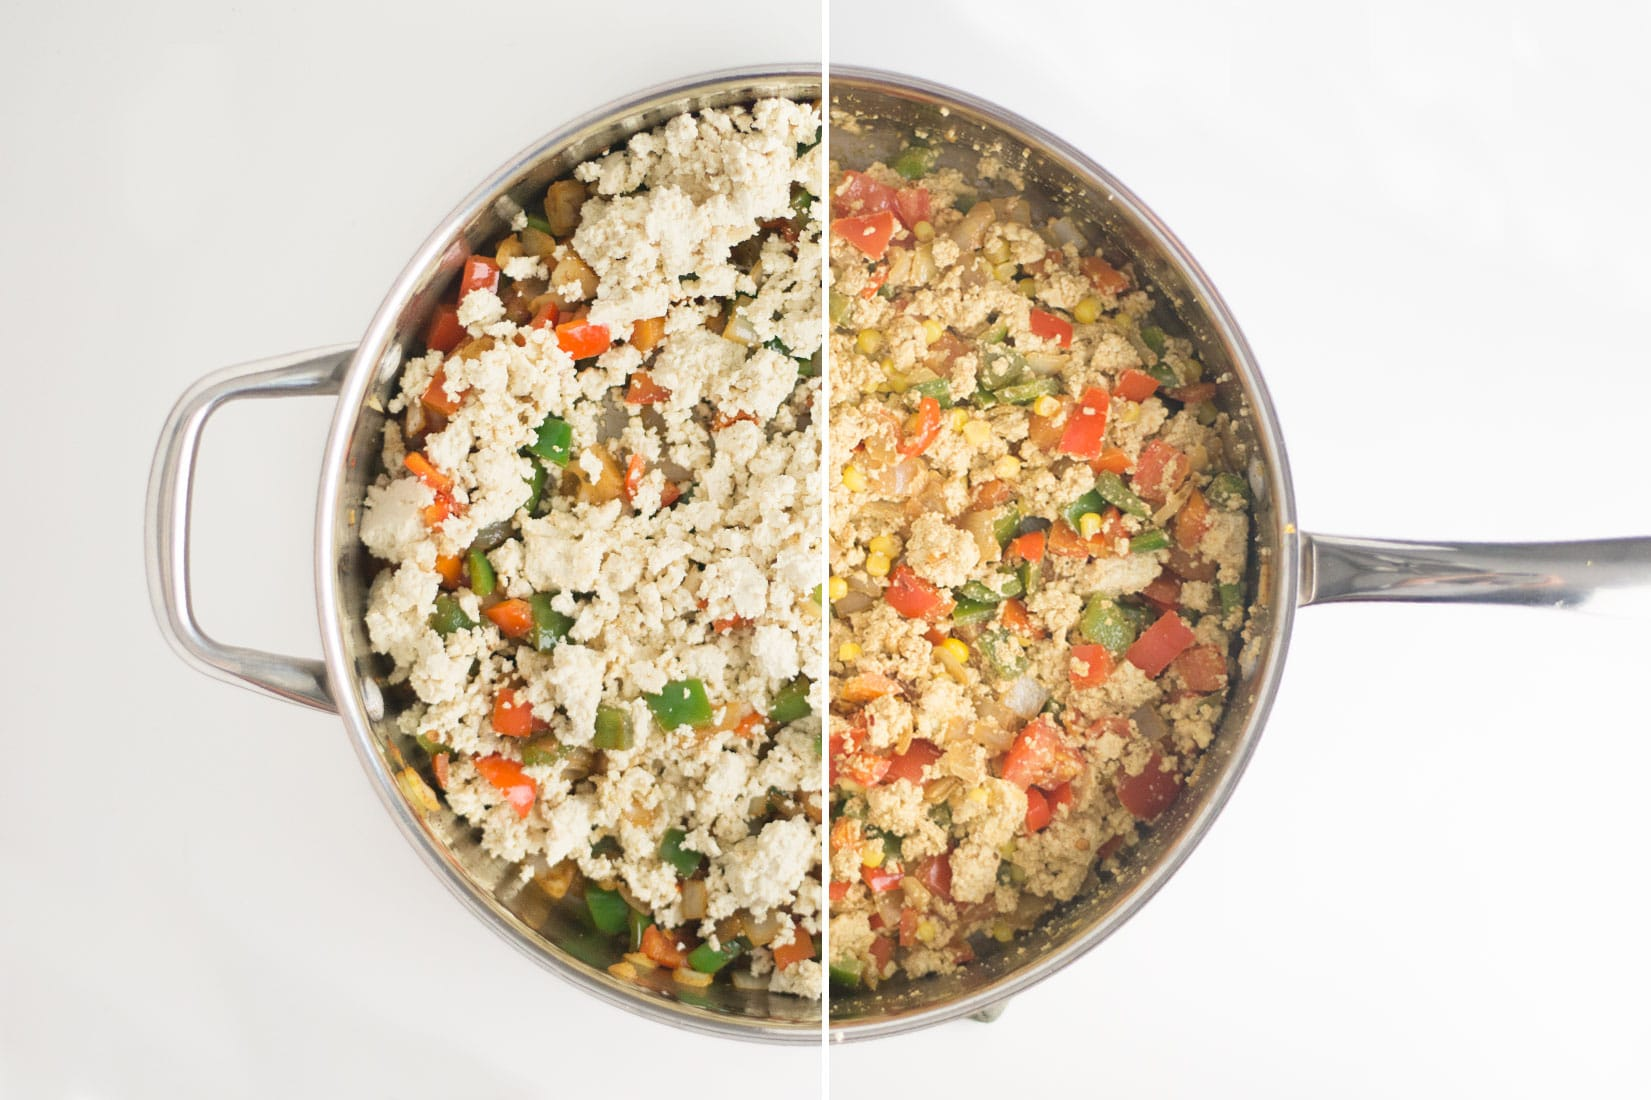 large pan with tofu scramble and vegetables